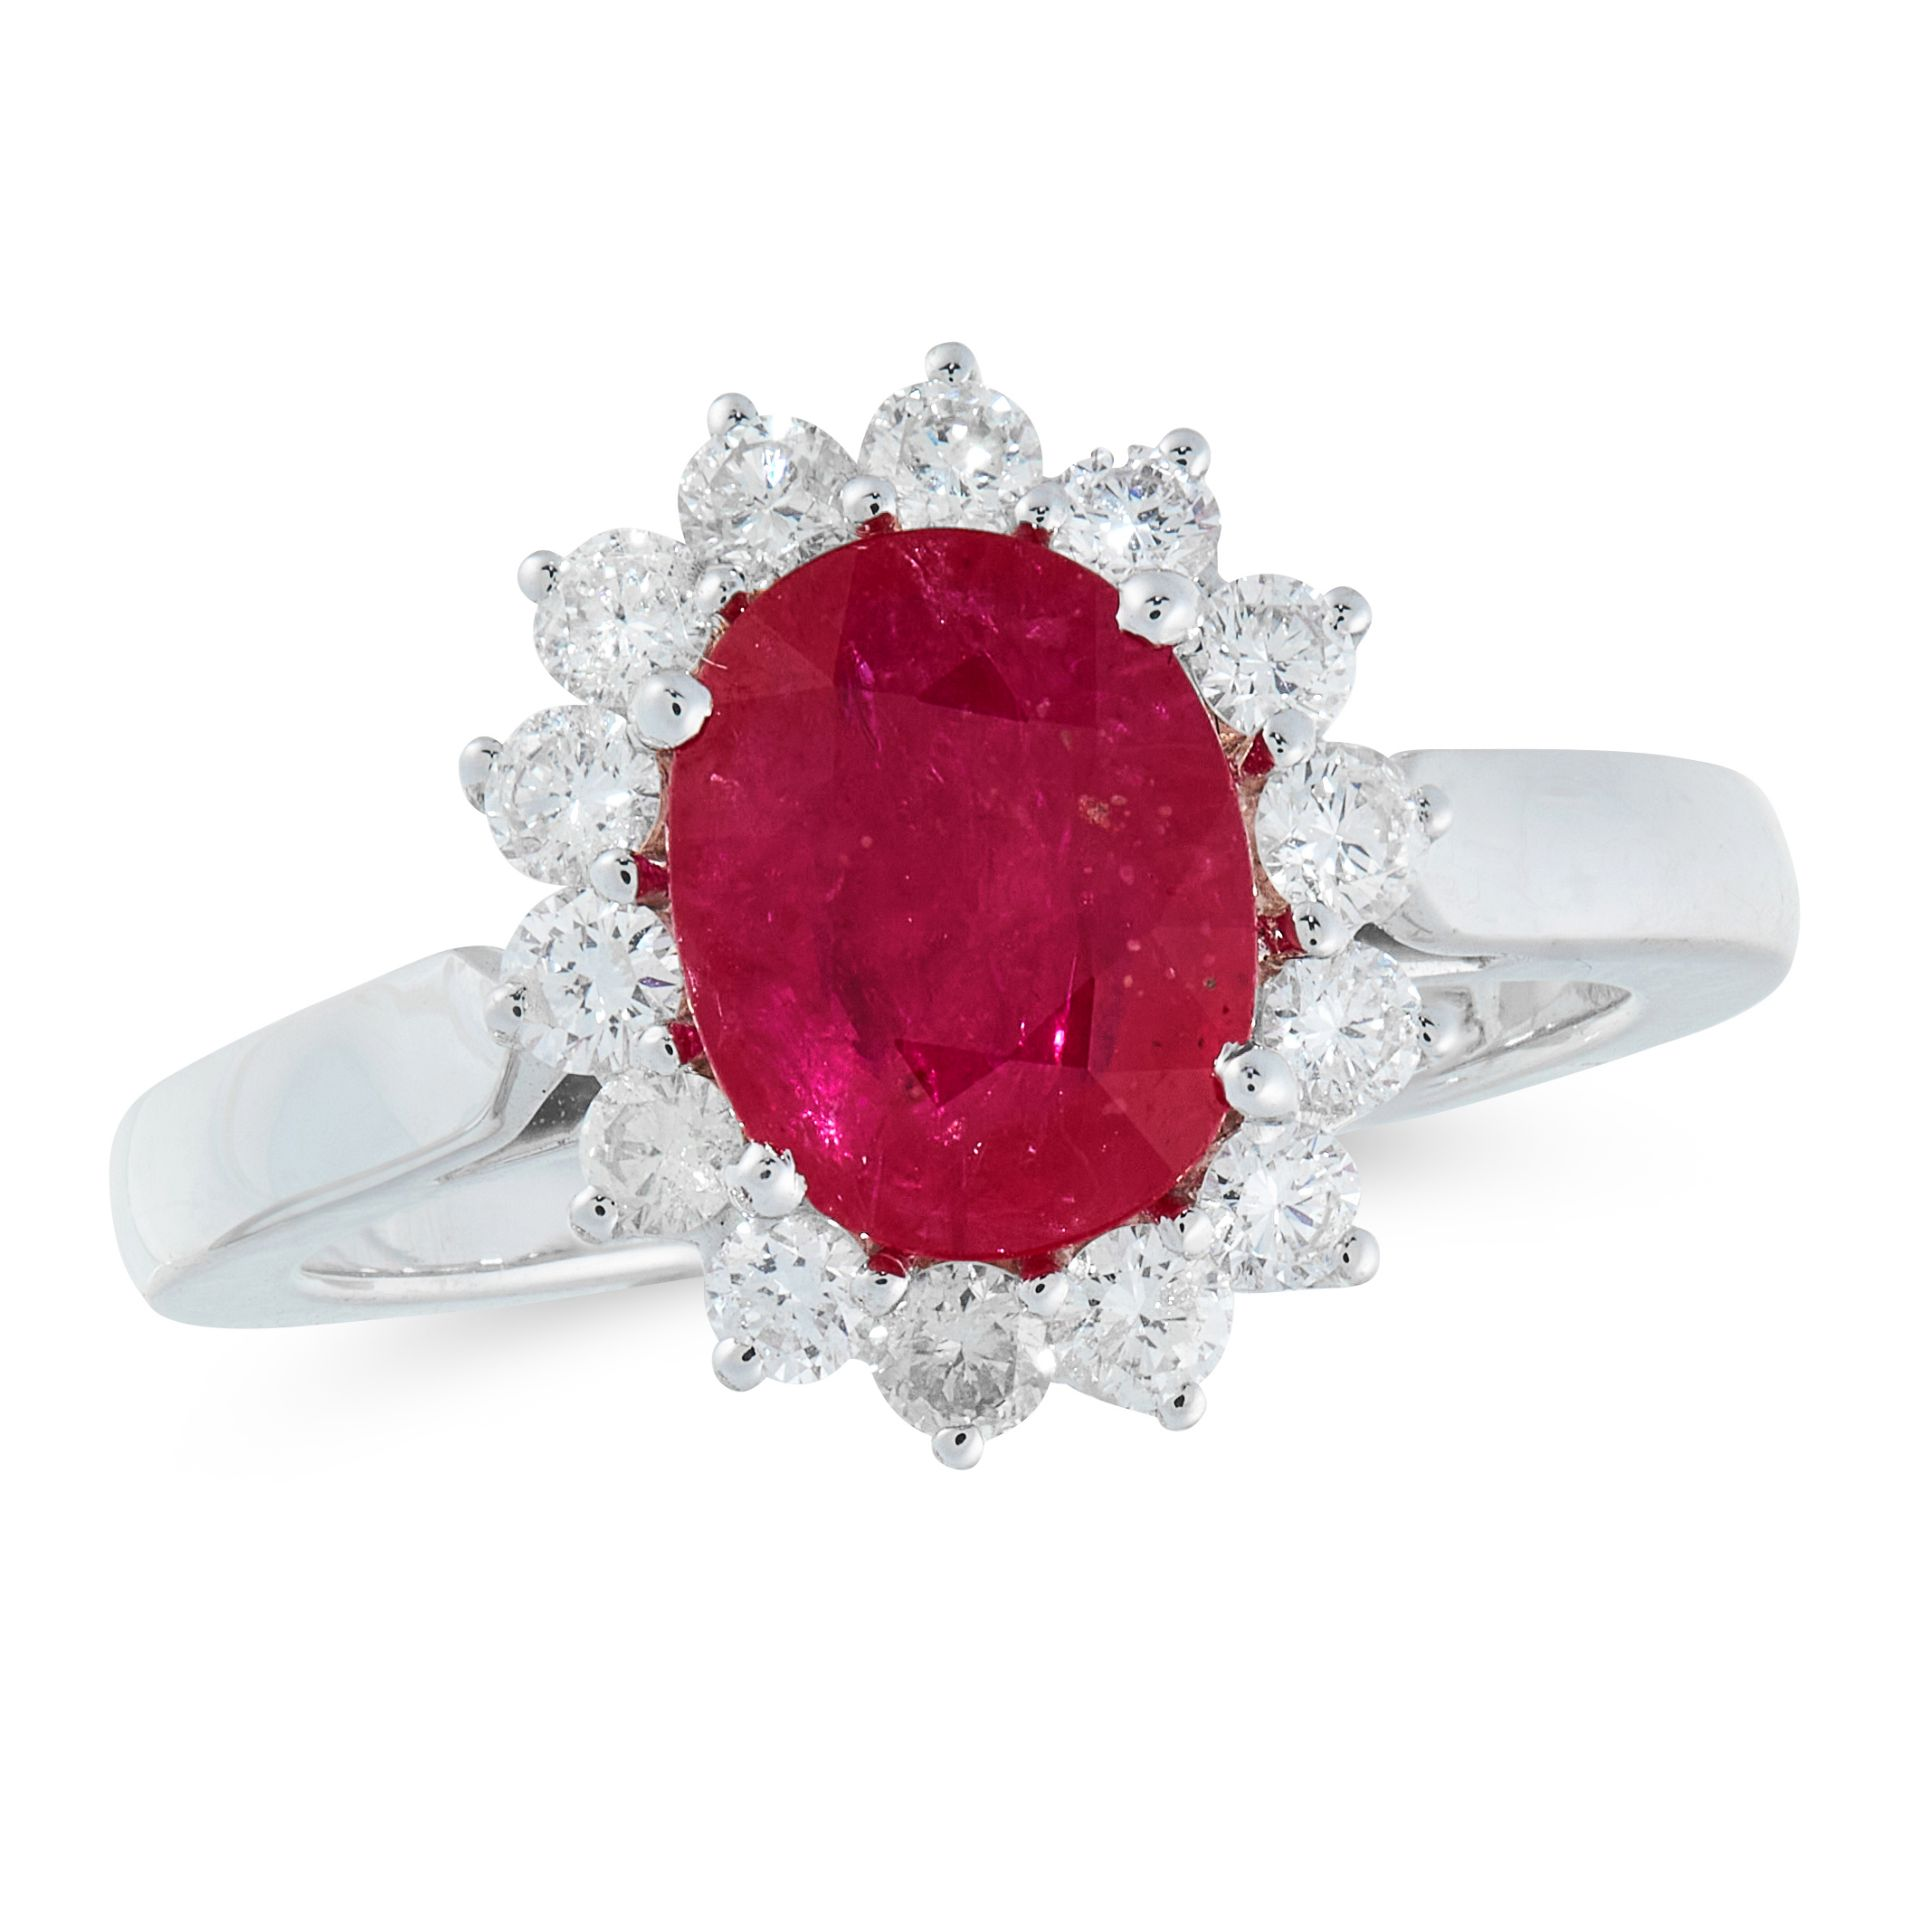 A RUBY AND DIAMOND CLUSTER RING in 18ct white gold, set with an oval cut ruby of 2.08 carats in a